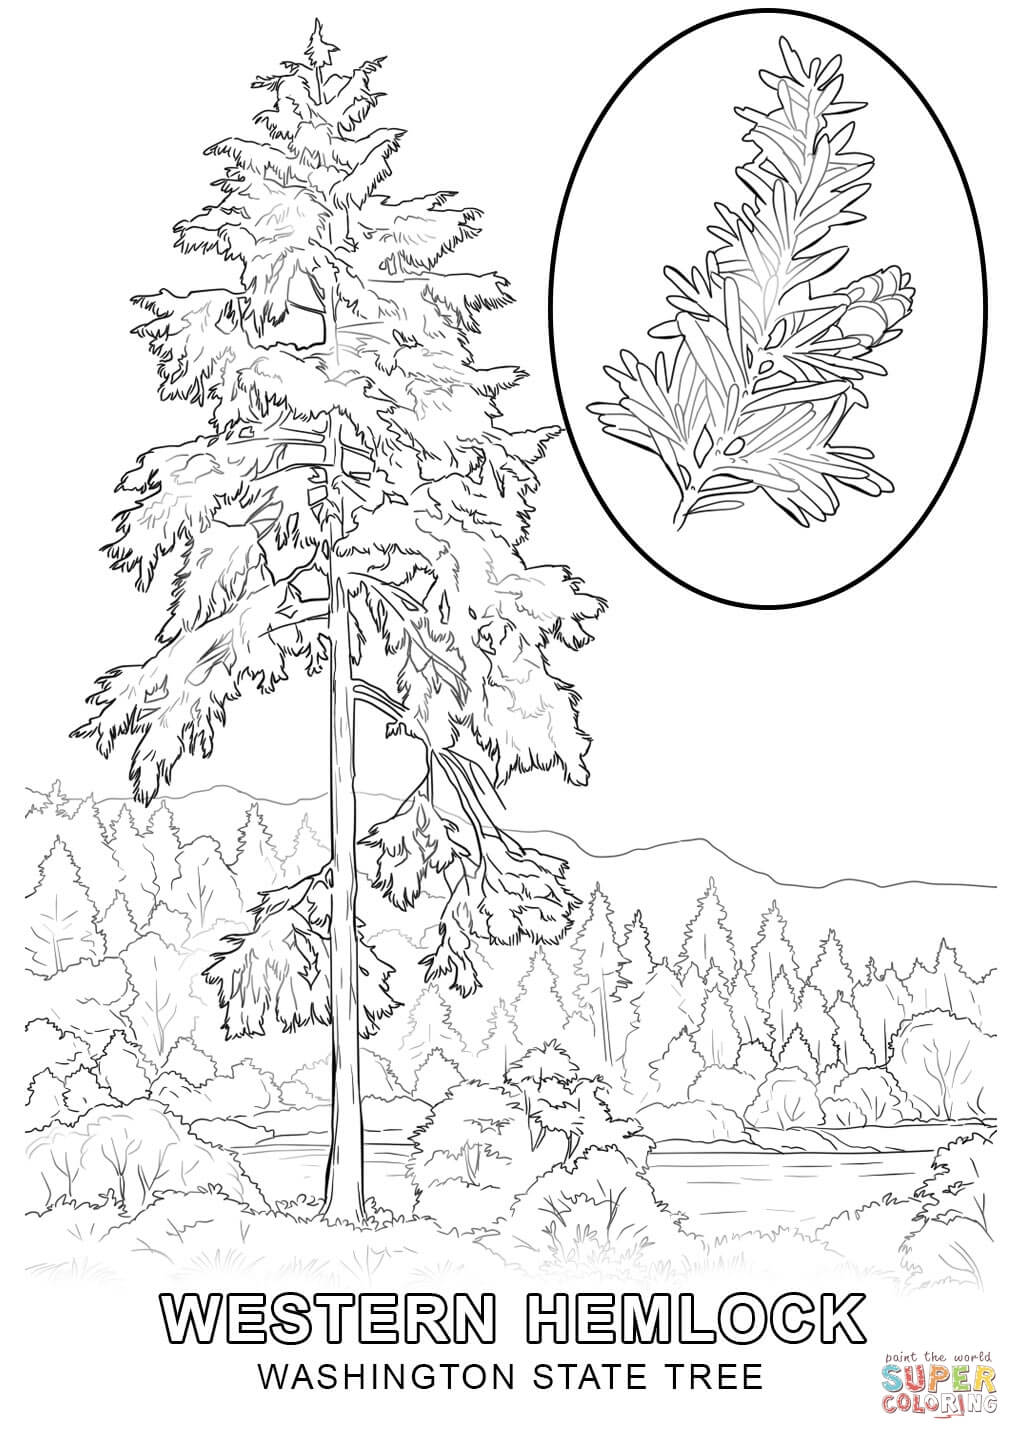 state tree coloring pages georgia state tree coloring page free printable coloring pages tree state coloring